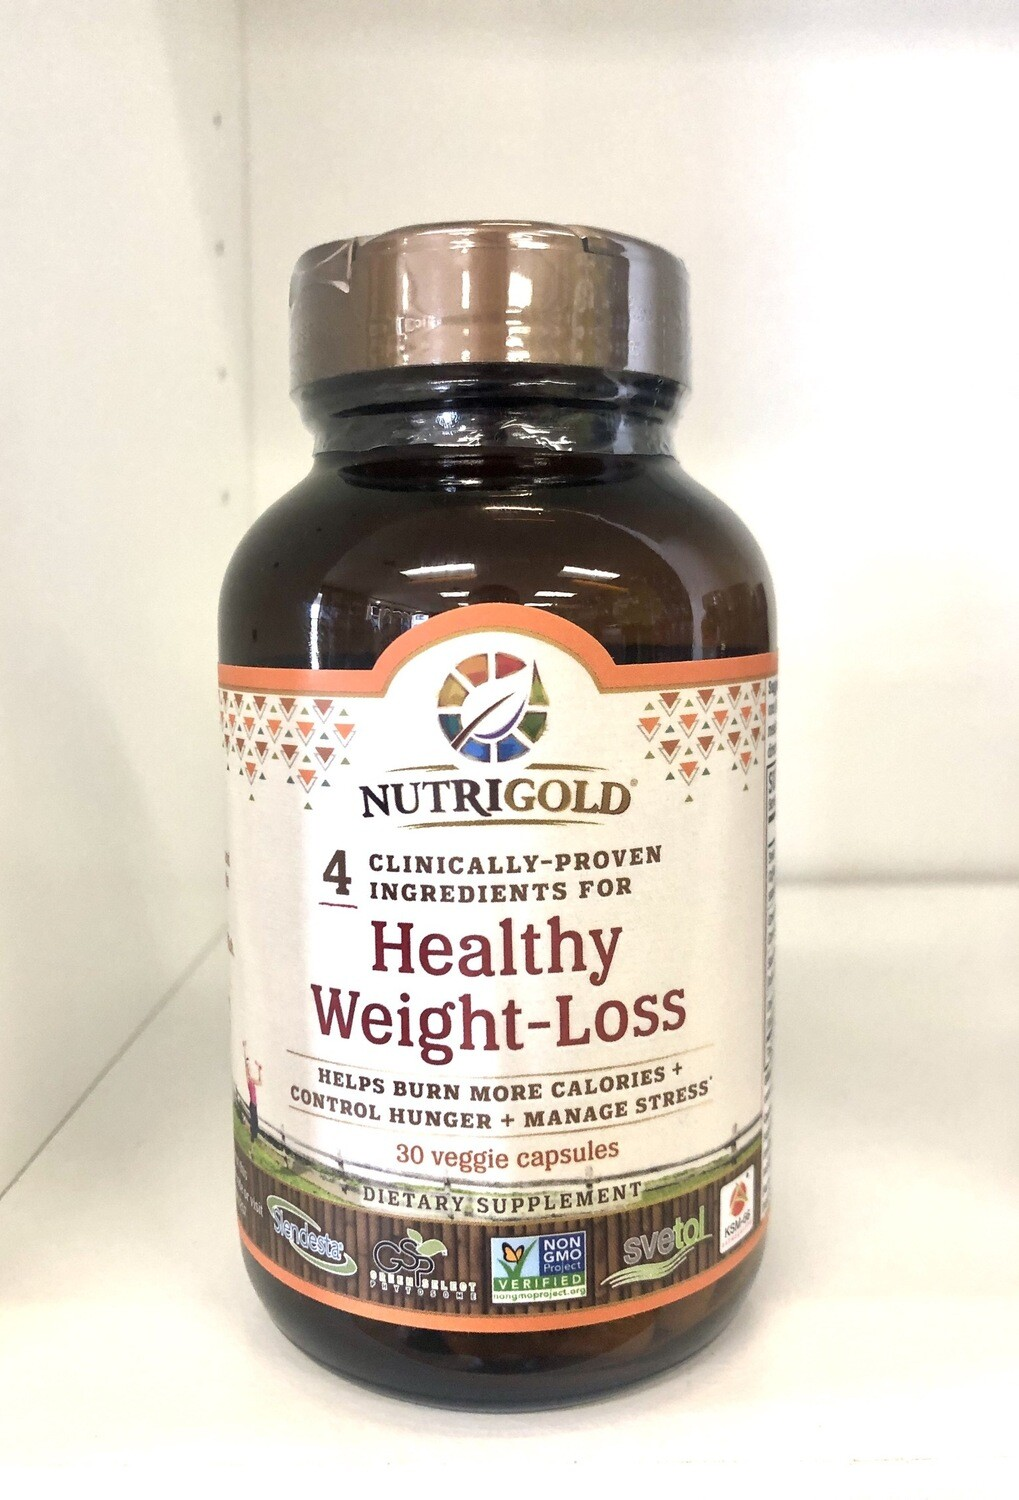 Nutrigold Healthy Weight-Loss